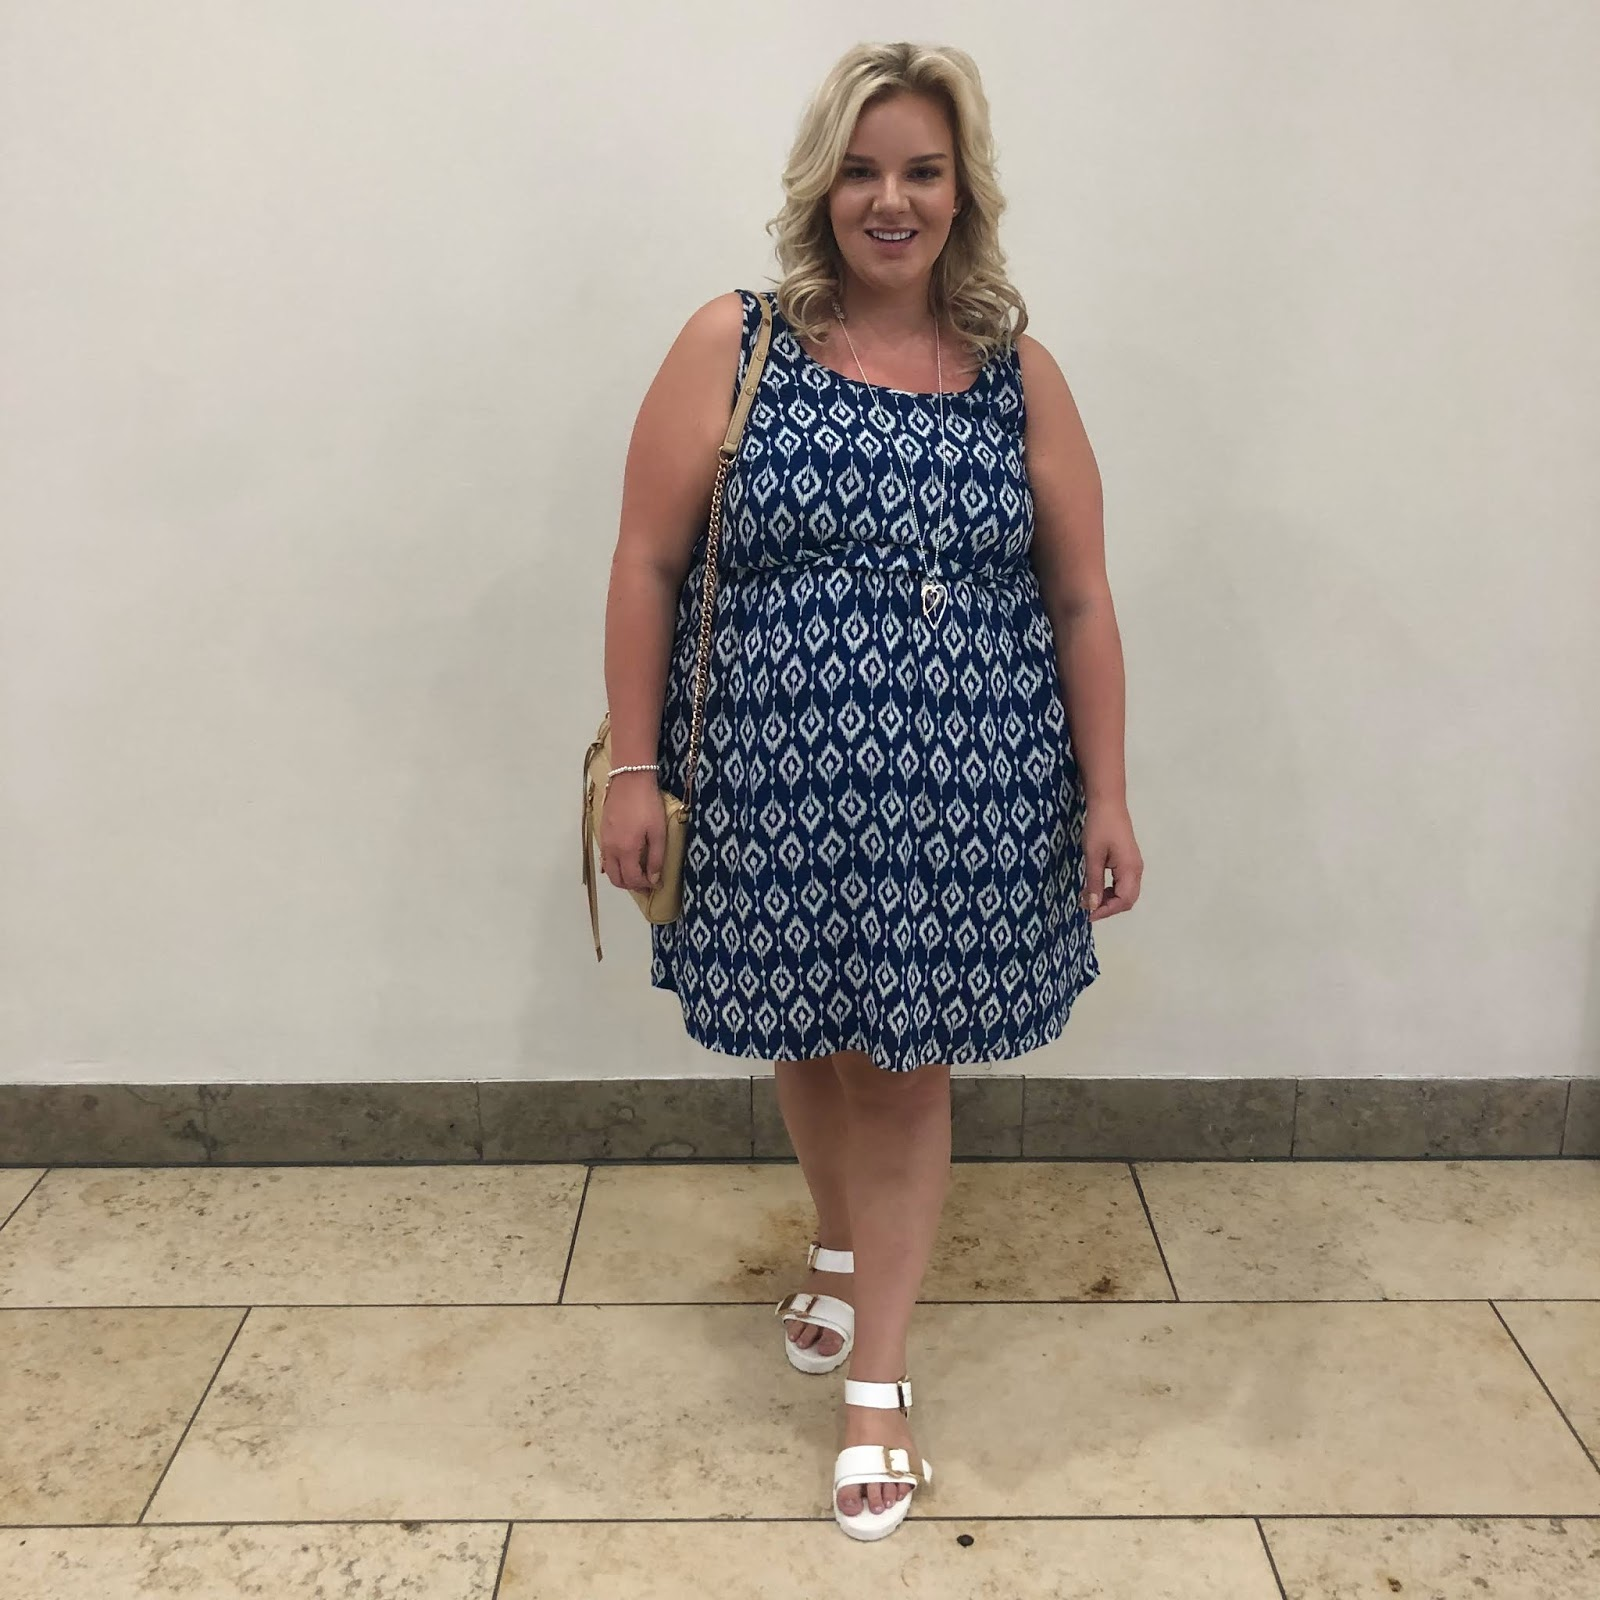 Yours Clothing Navy and White Plus Size Dress on WhatLauraLoves UK Blogger